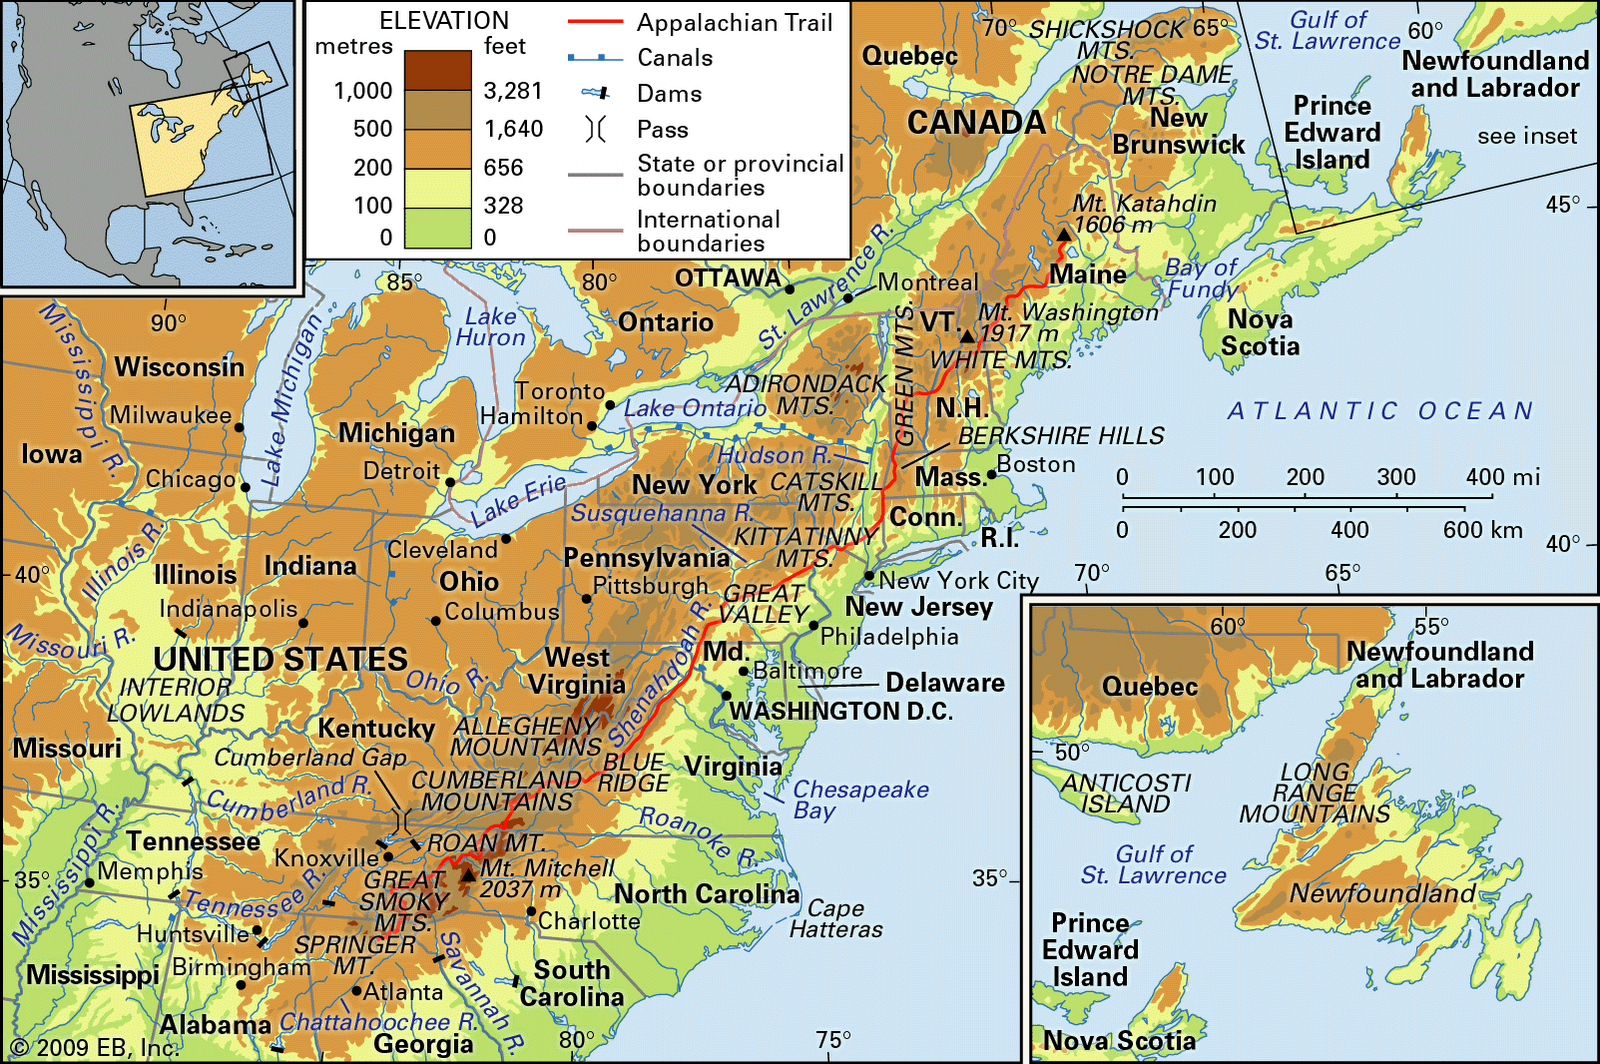 a geographical overview of the appalachian mountain system in the eastern united states The appalachian mountains, often called the appalachians, are a system of mountains in eastern north america new england is a geographical region which comprises six states of the northeastern united states: connecticut, maine, massachusetts, new hampshire, rhode island, and.